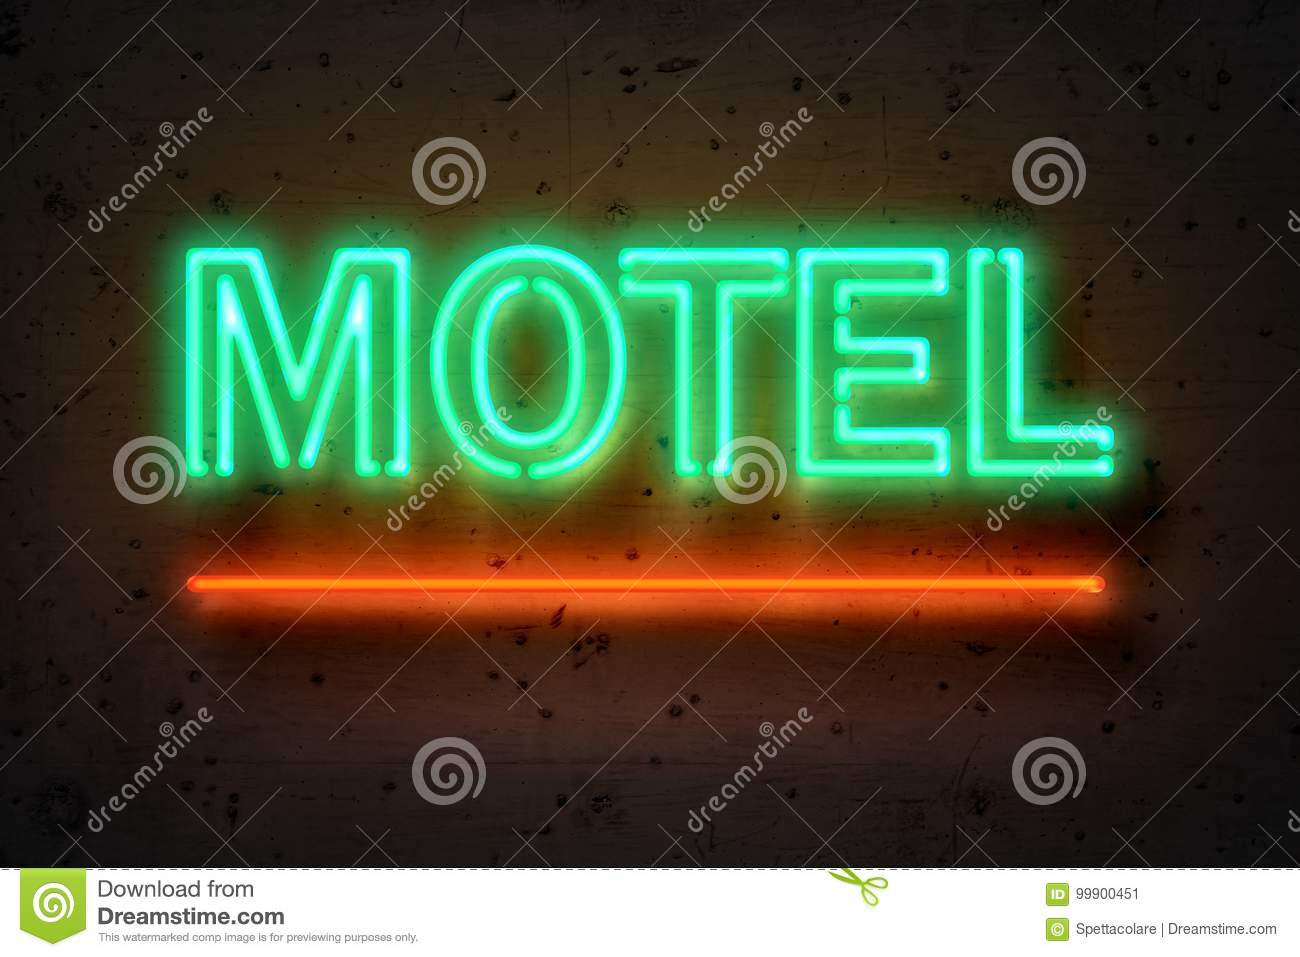 Motel, neon sign on concrete wall